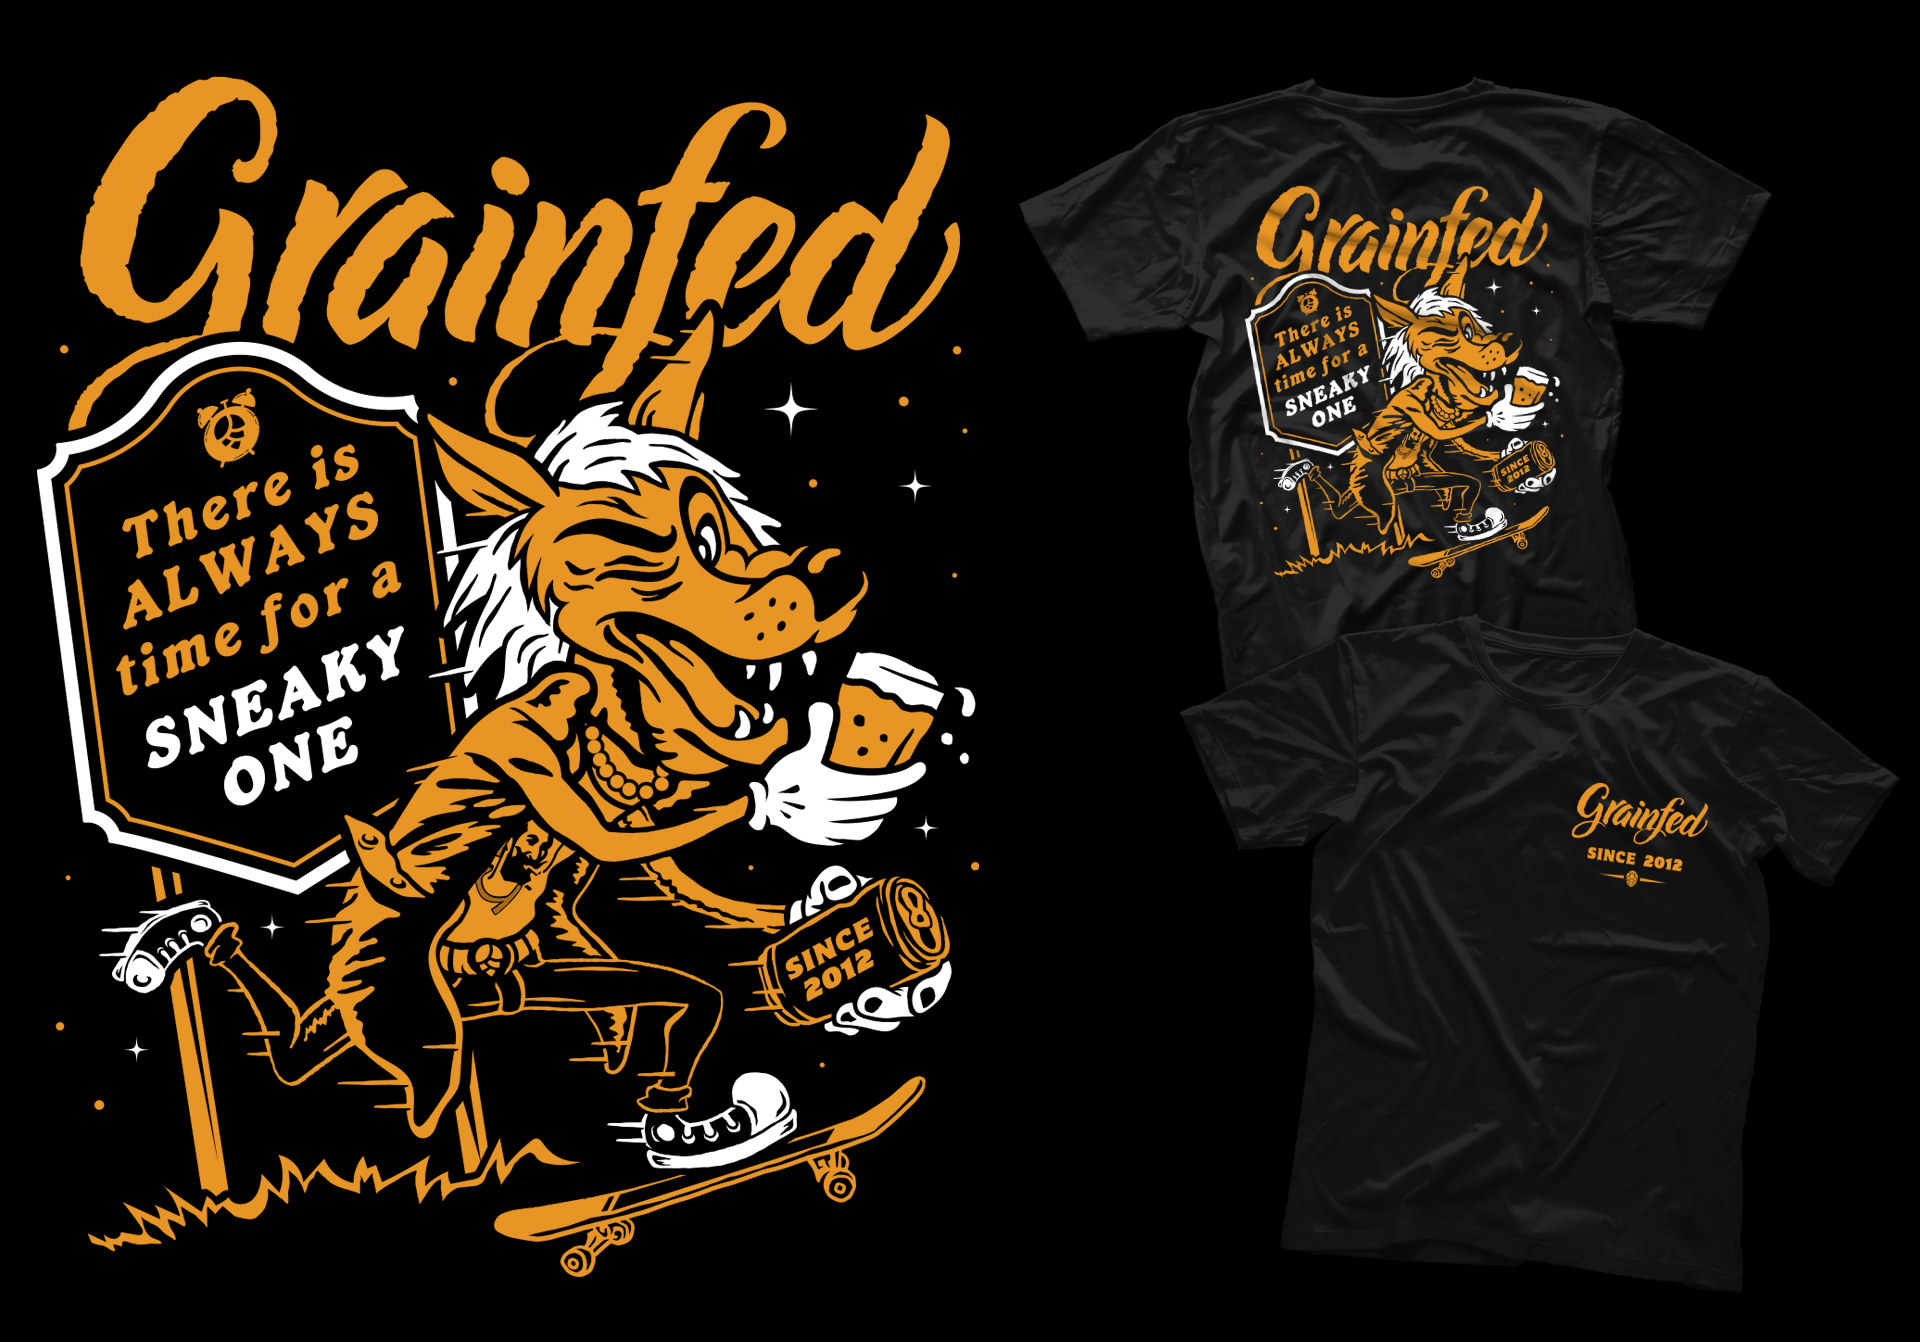 Honey Rogue Design Shirt Grainfed Brewing Sneaky One